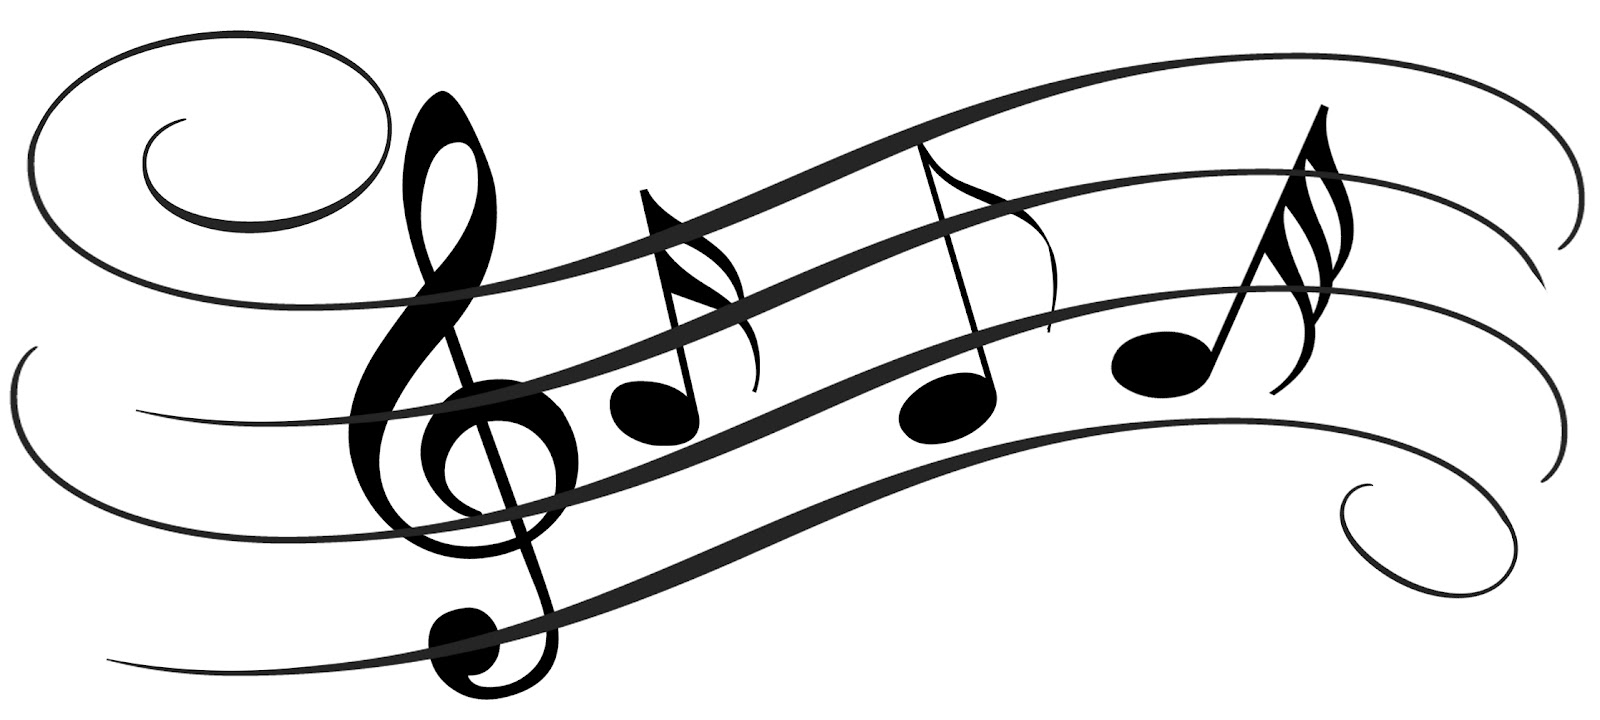 image relating to Printable Musical Note identified as significant printable audio notes -